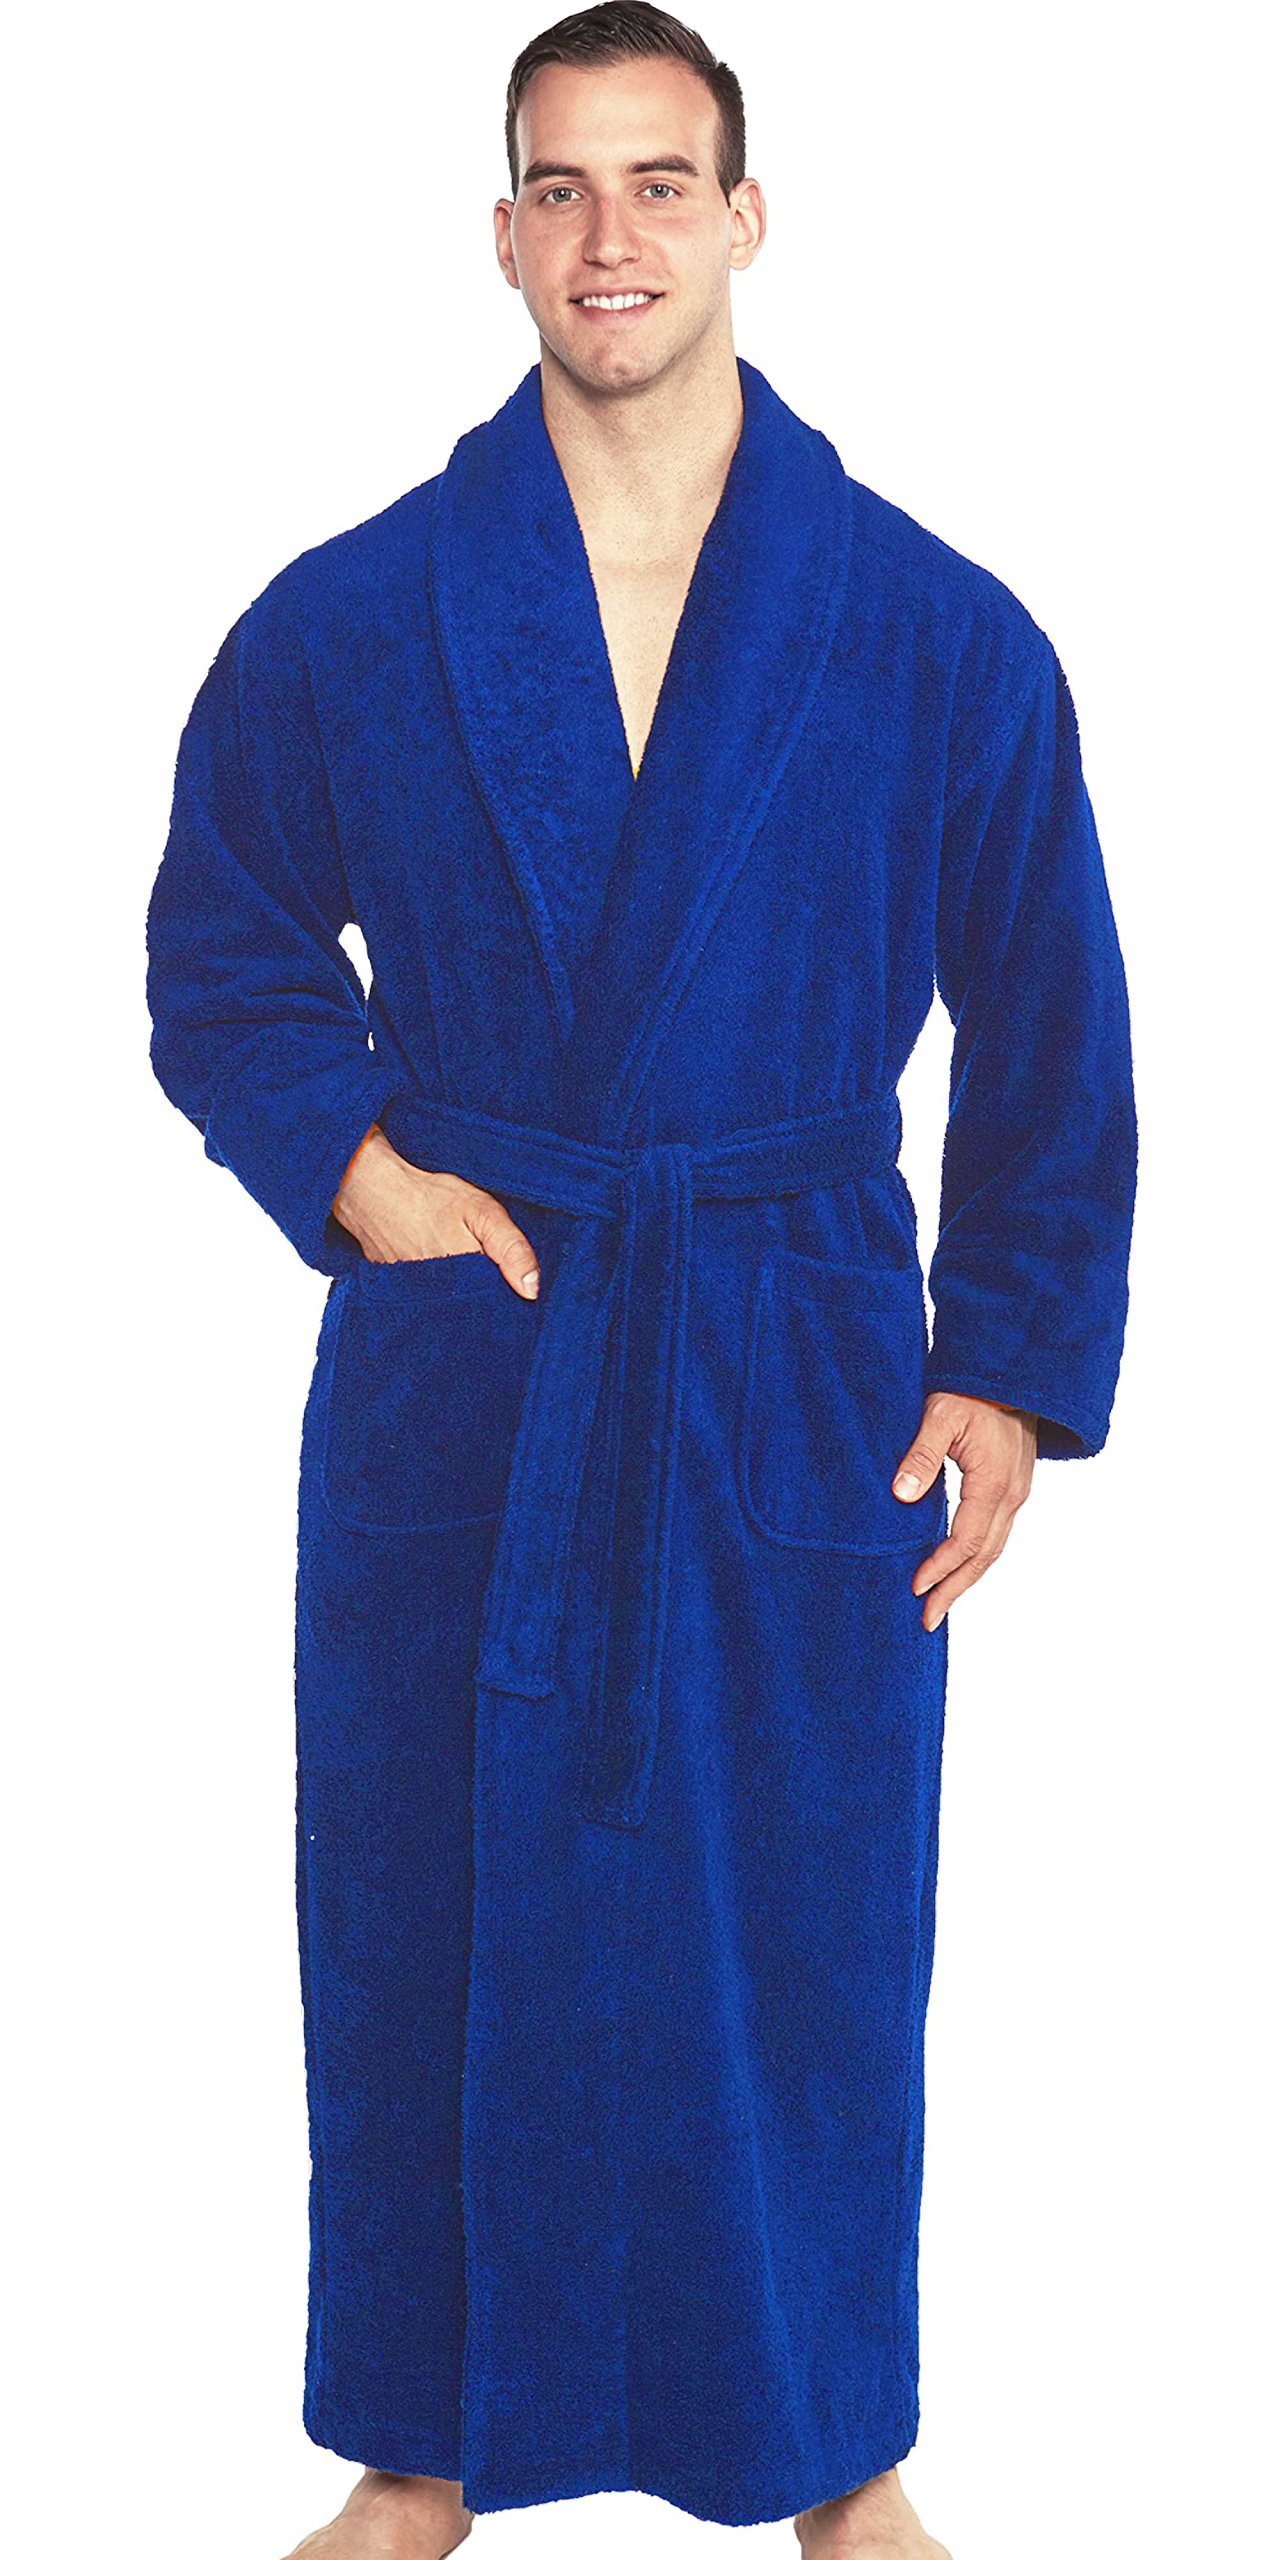 TurkishTowels Terry Bathrobe - Authentic Luxury You Can Feel - 100% Pure Combed Turkish Cotton Terry Cloth Robe for Men, Women & Teens (Royal Blue (Chiron), X-Large)